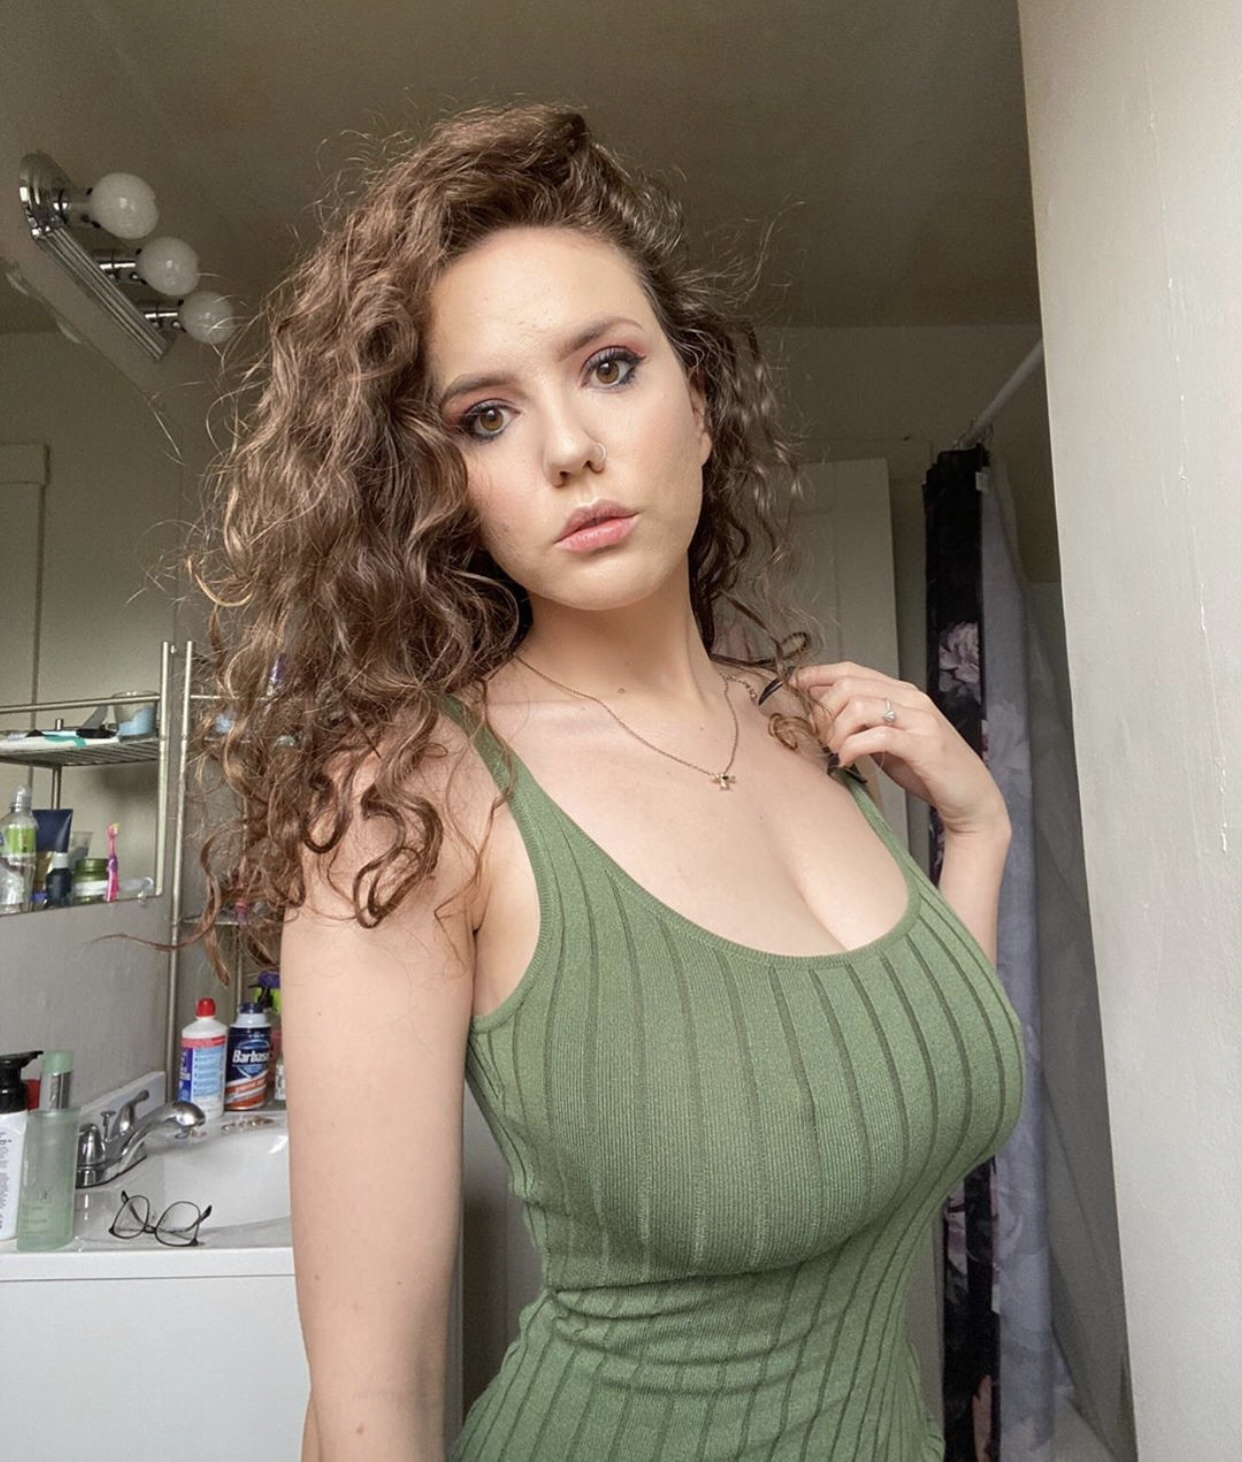 Laura Earnesty - Busty Curly Hair Girl Nudes - Fapdungeon